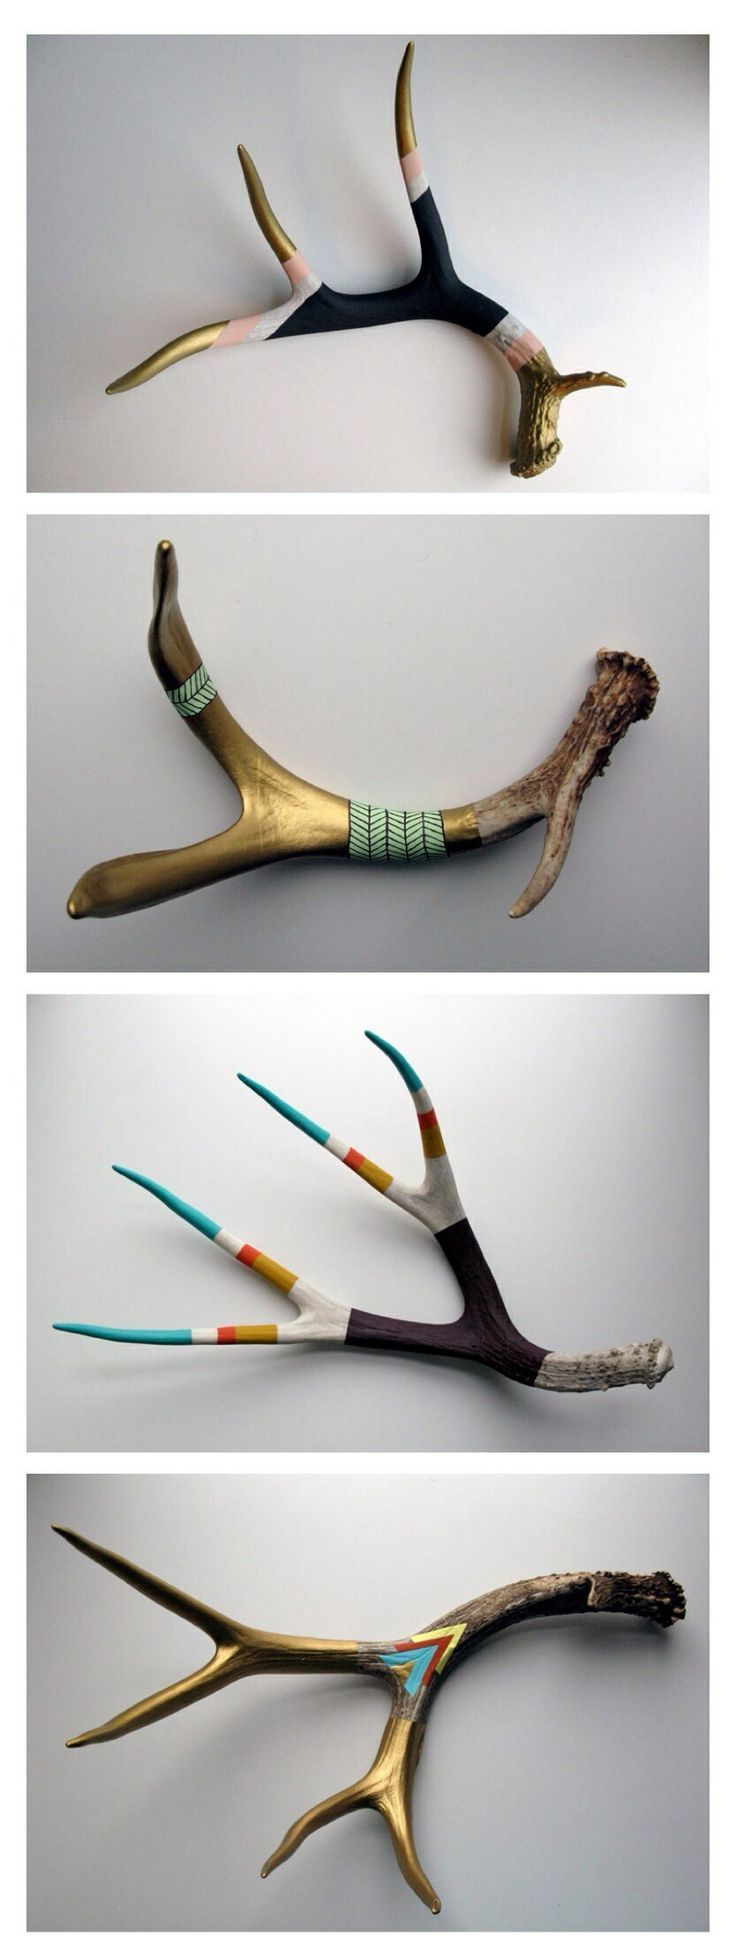 Painted deer antlers southwest wall decor modern southwestern painted deer antlers southwest wall decor modern southwestern decor design ideas amipublicfo Choice Image